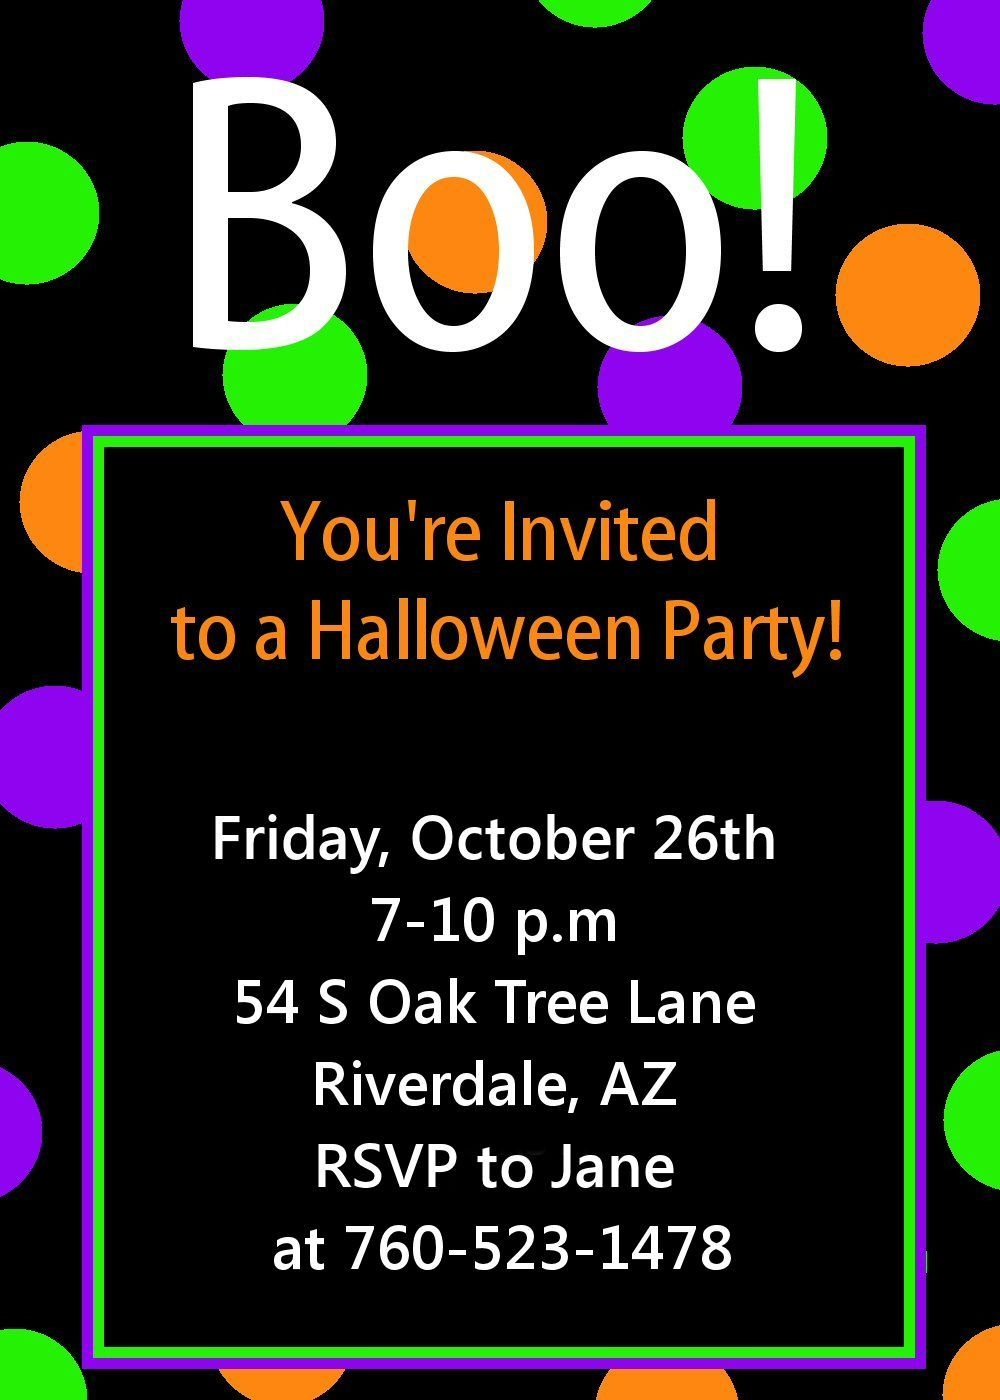 Cute Free Printable Halloween Invitations | Halloween Goodies - Free Printable Halloween Birthday Party Invitations